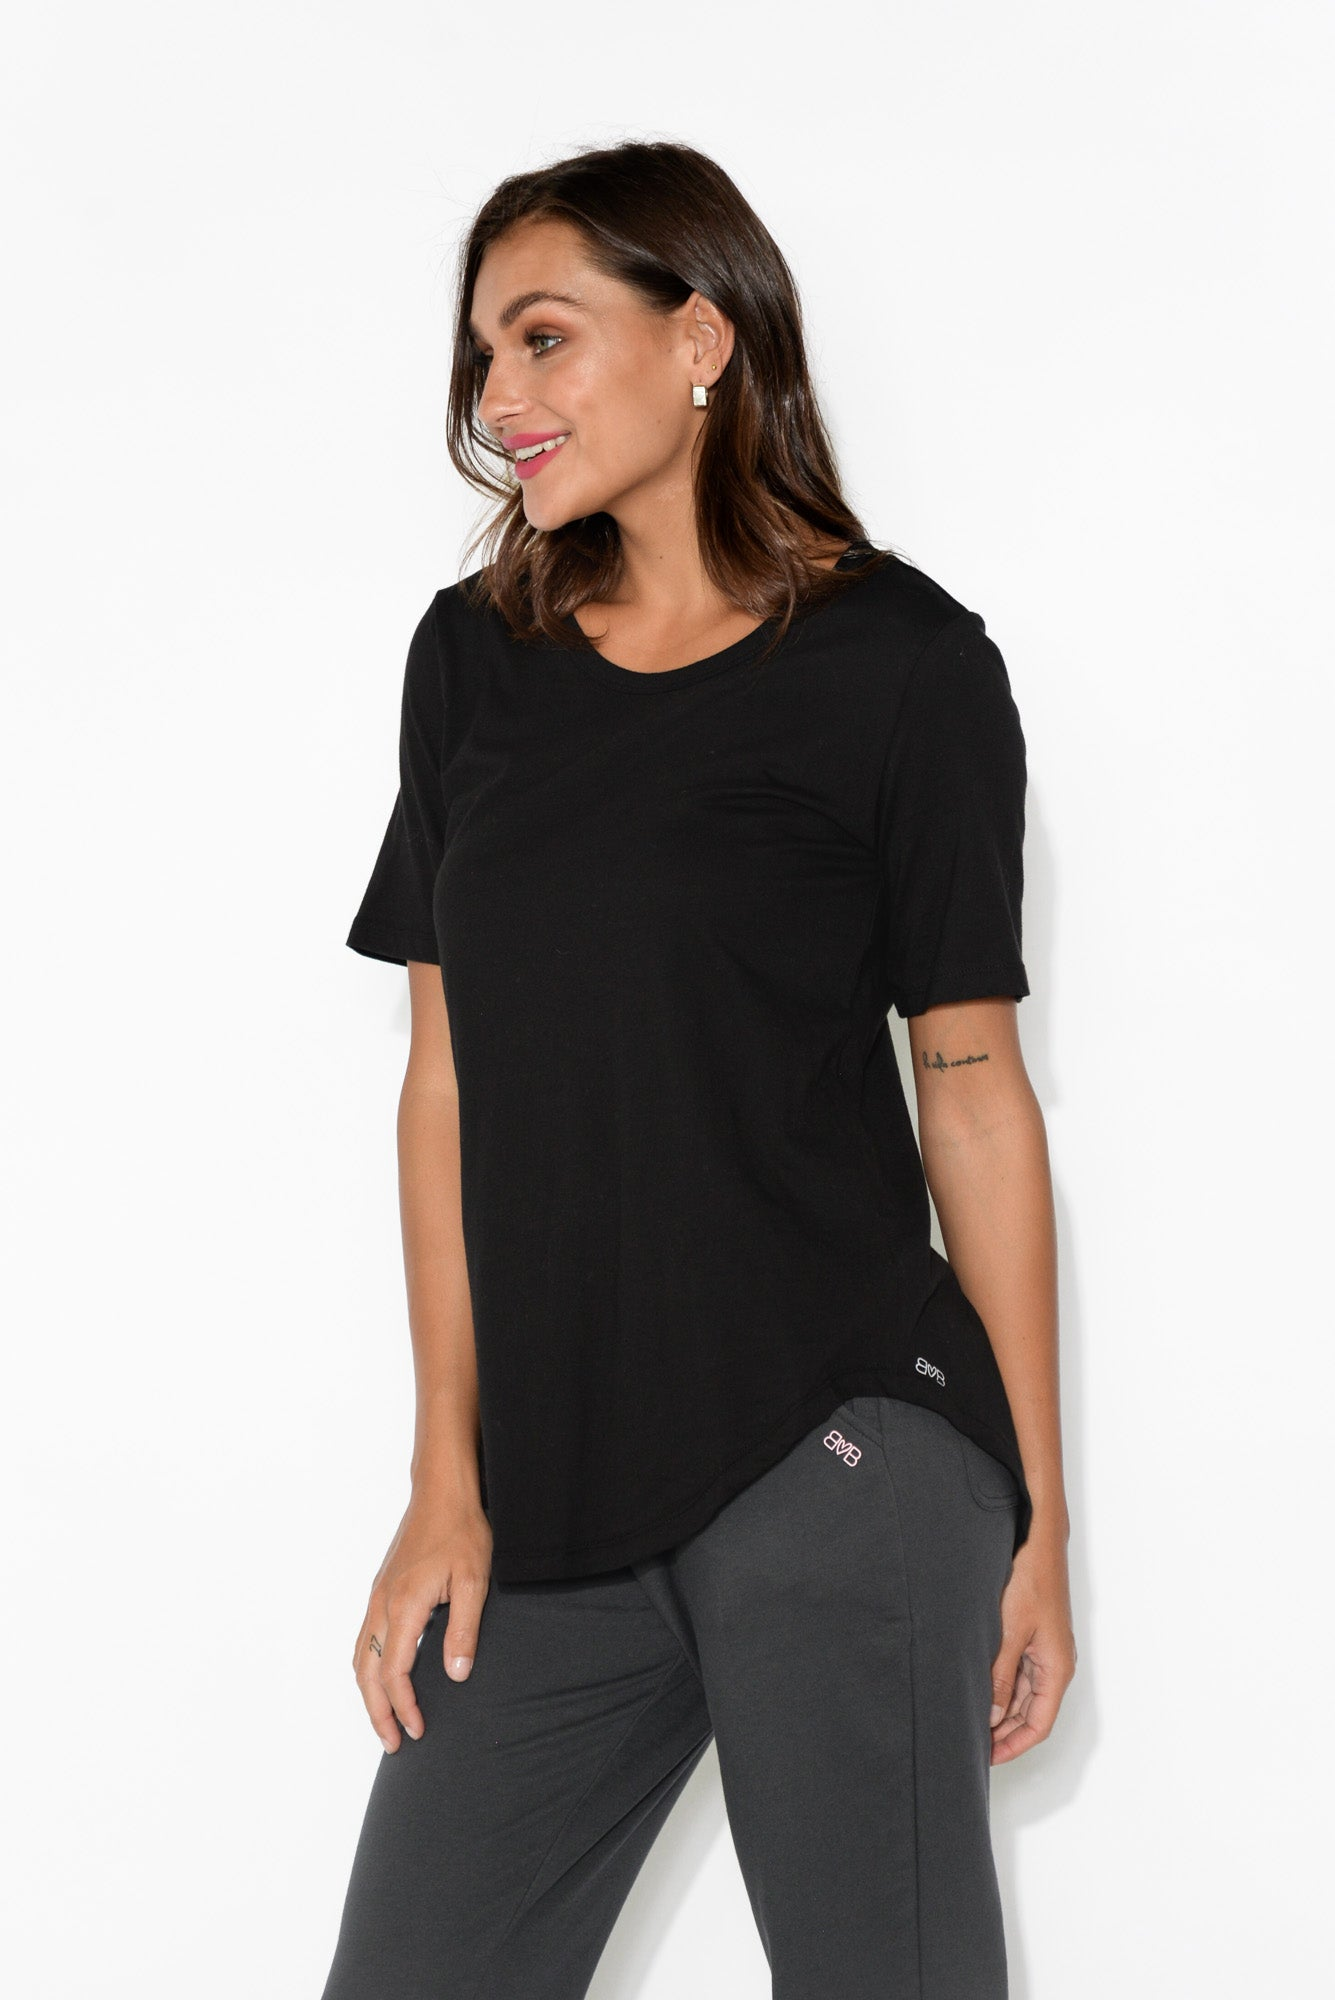 Ariana Black Cotton Tee